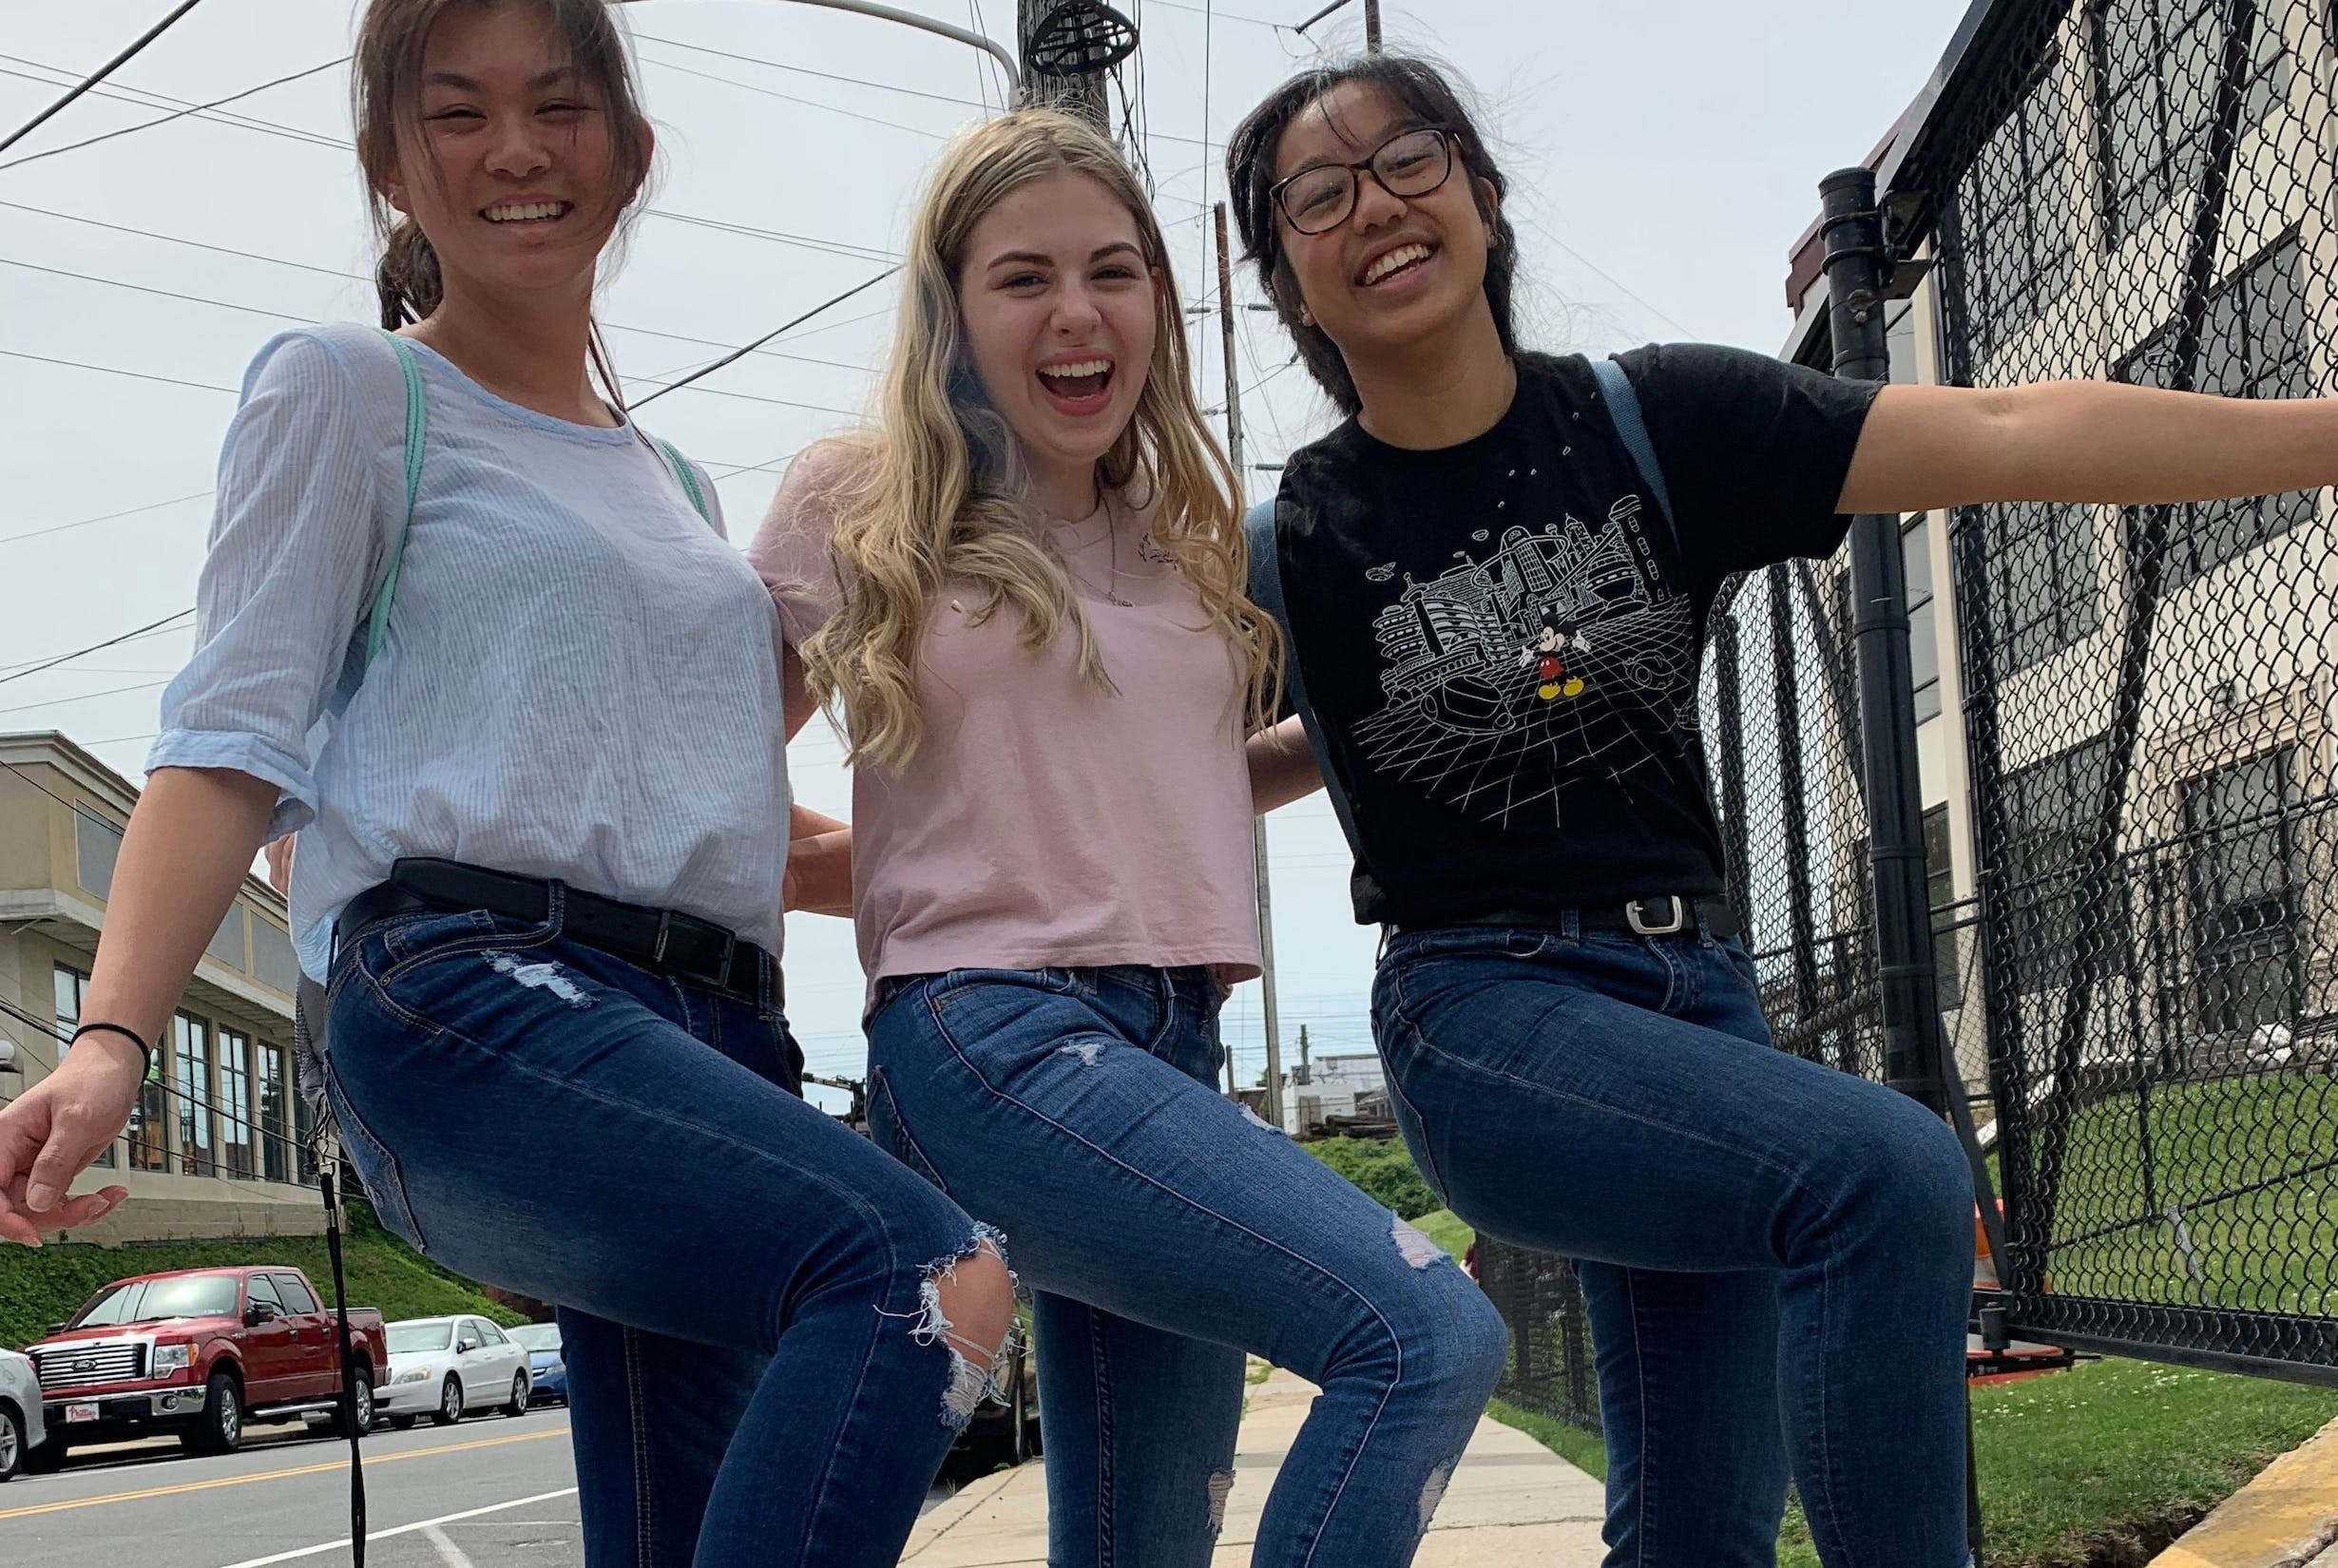 Three female students walking in tandem while laughing